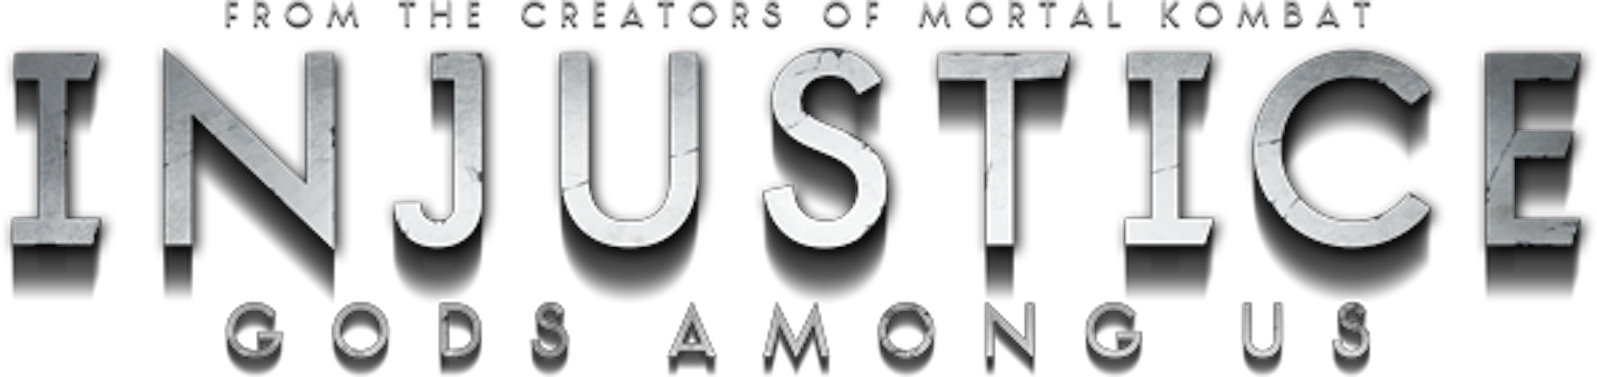 Among Us Icon Png Transparent